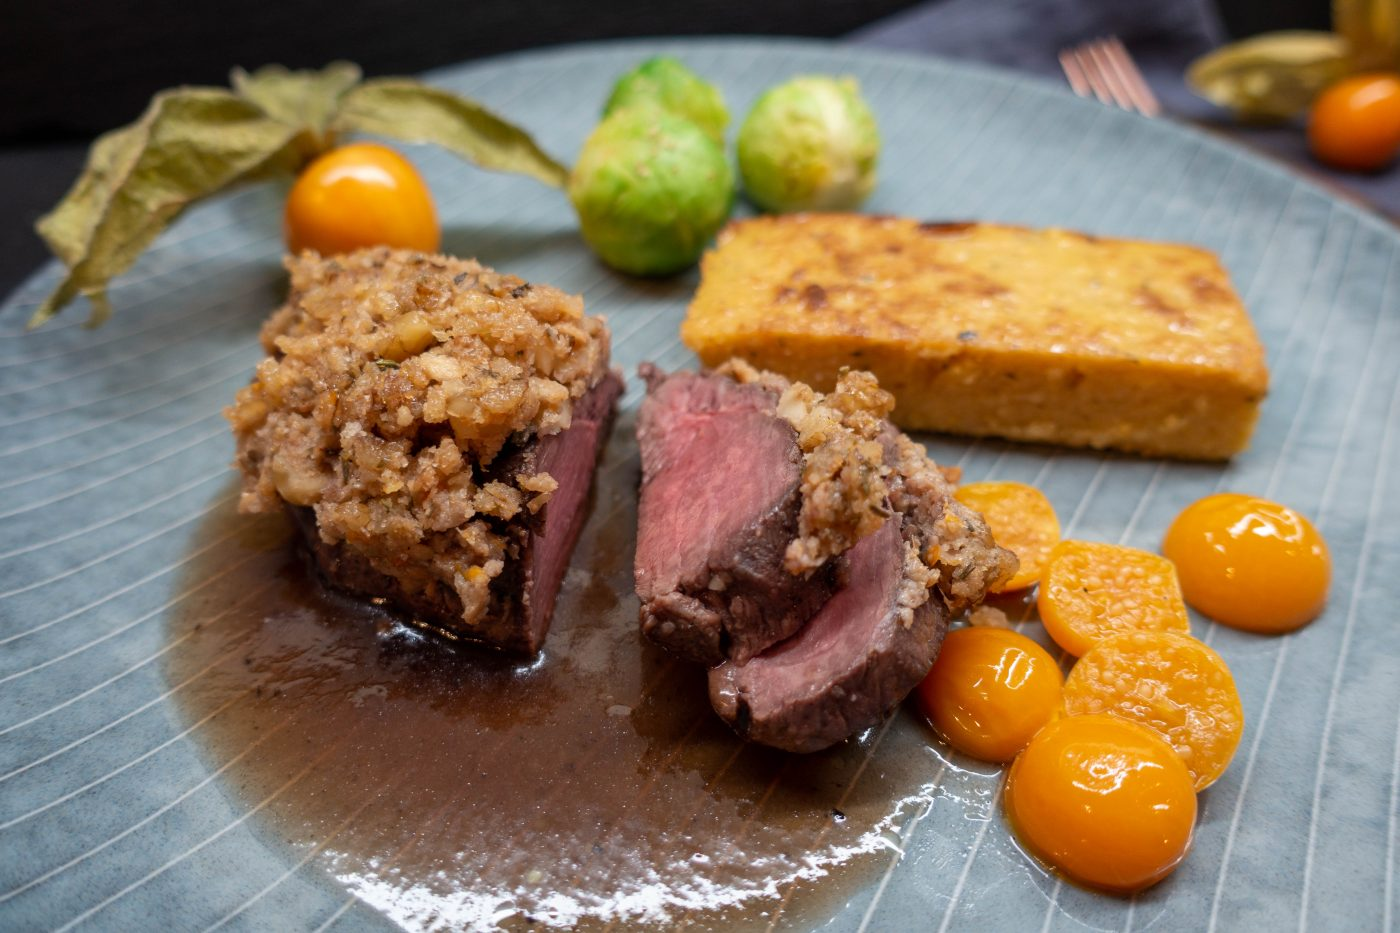 venison fillet under a walnut and herb crust with physalis sauteed in butter, fried polenta slices and an elderberry gravy